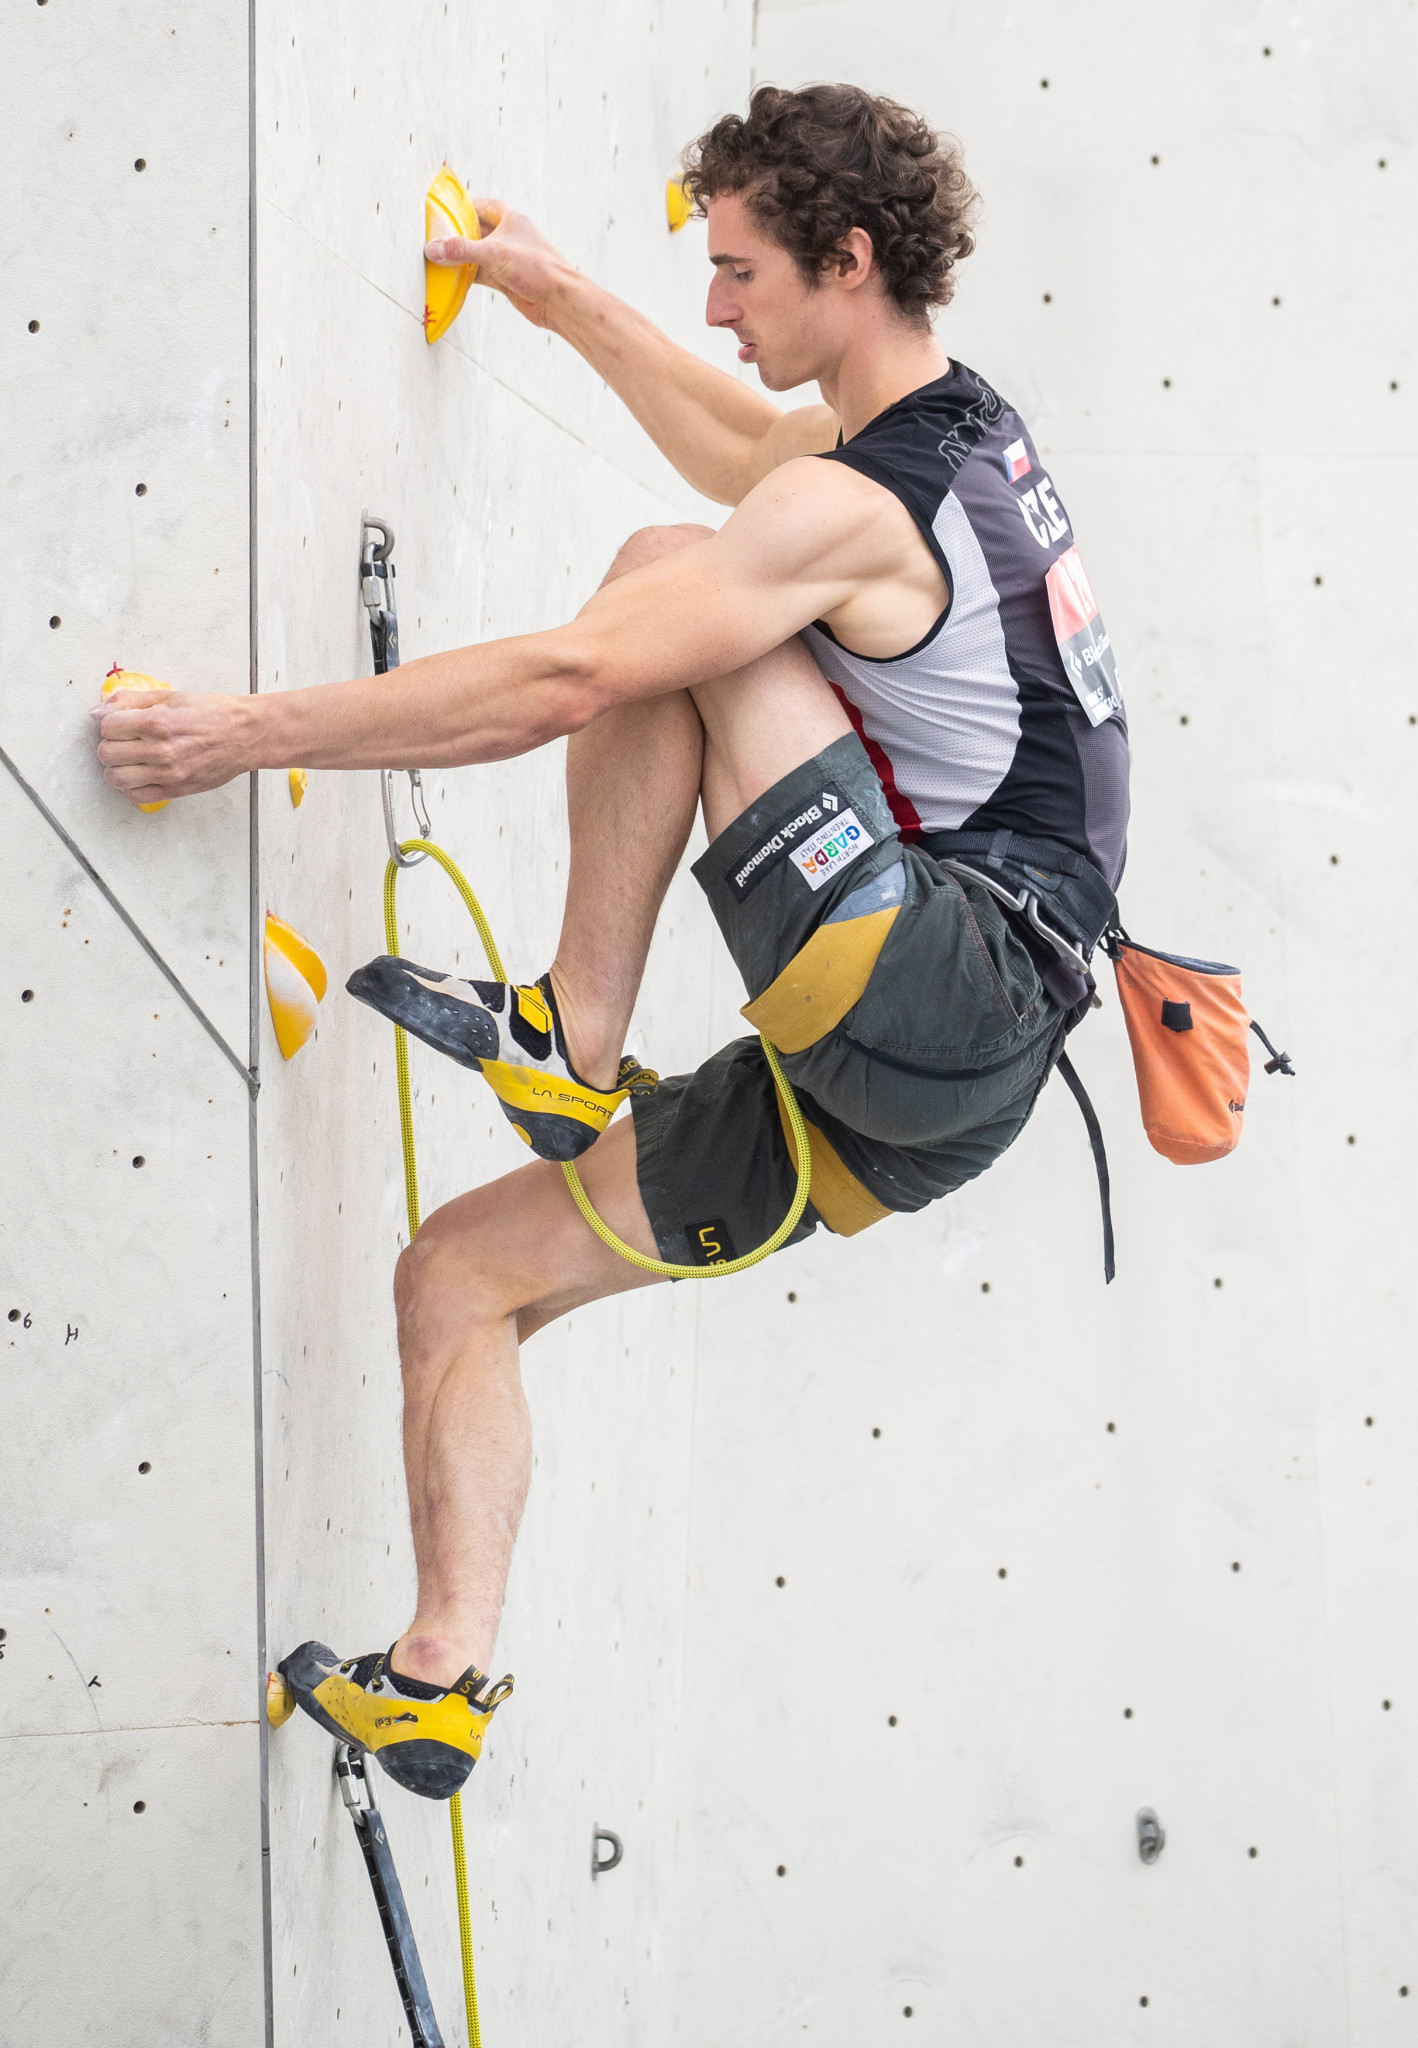 Ondra's triple lead title hopes looking strong at IFSC Climbing and Paraclimbing World Championships